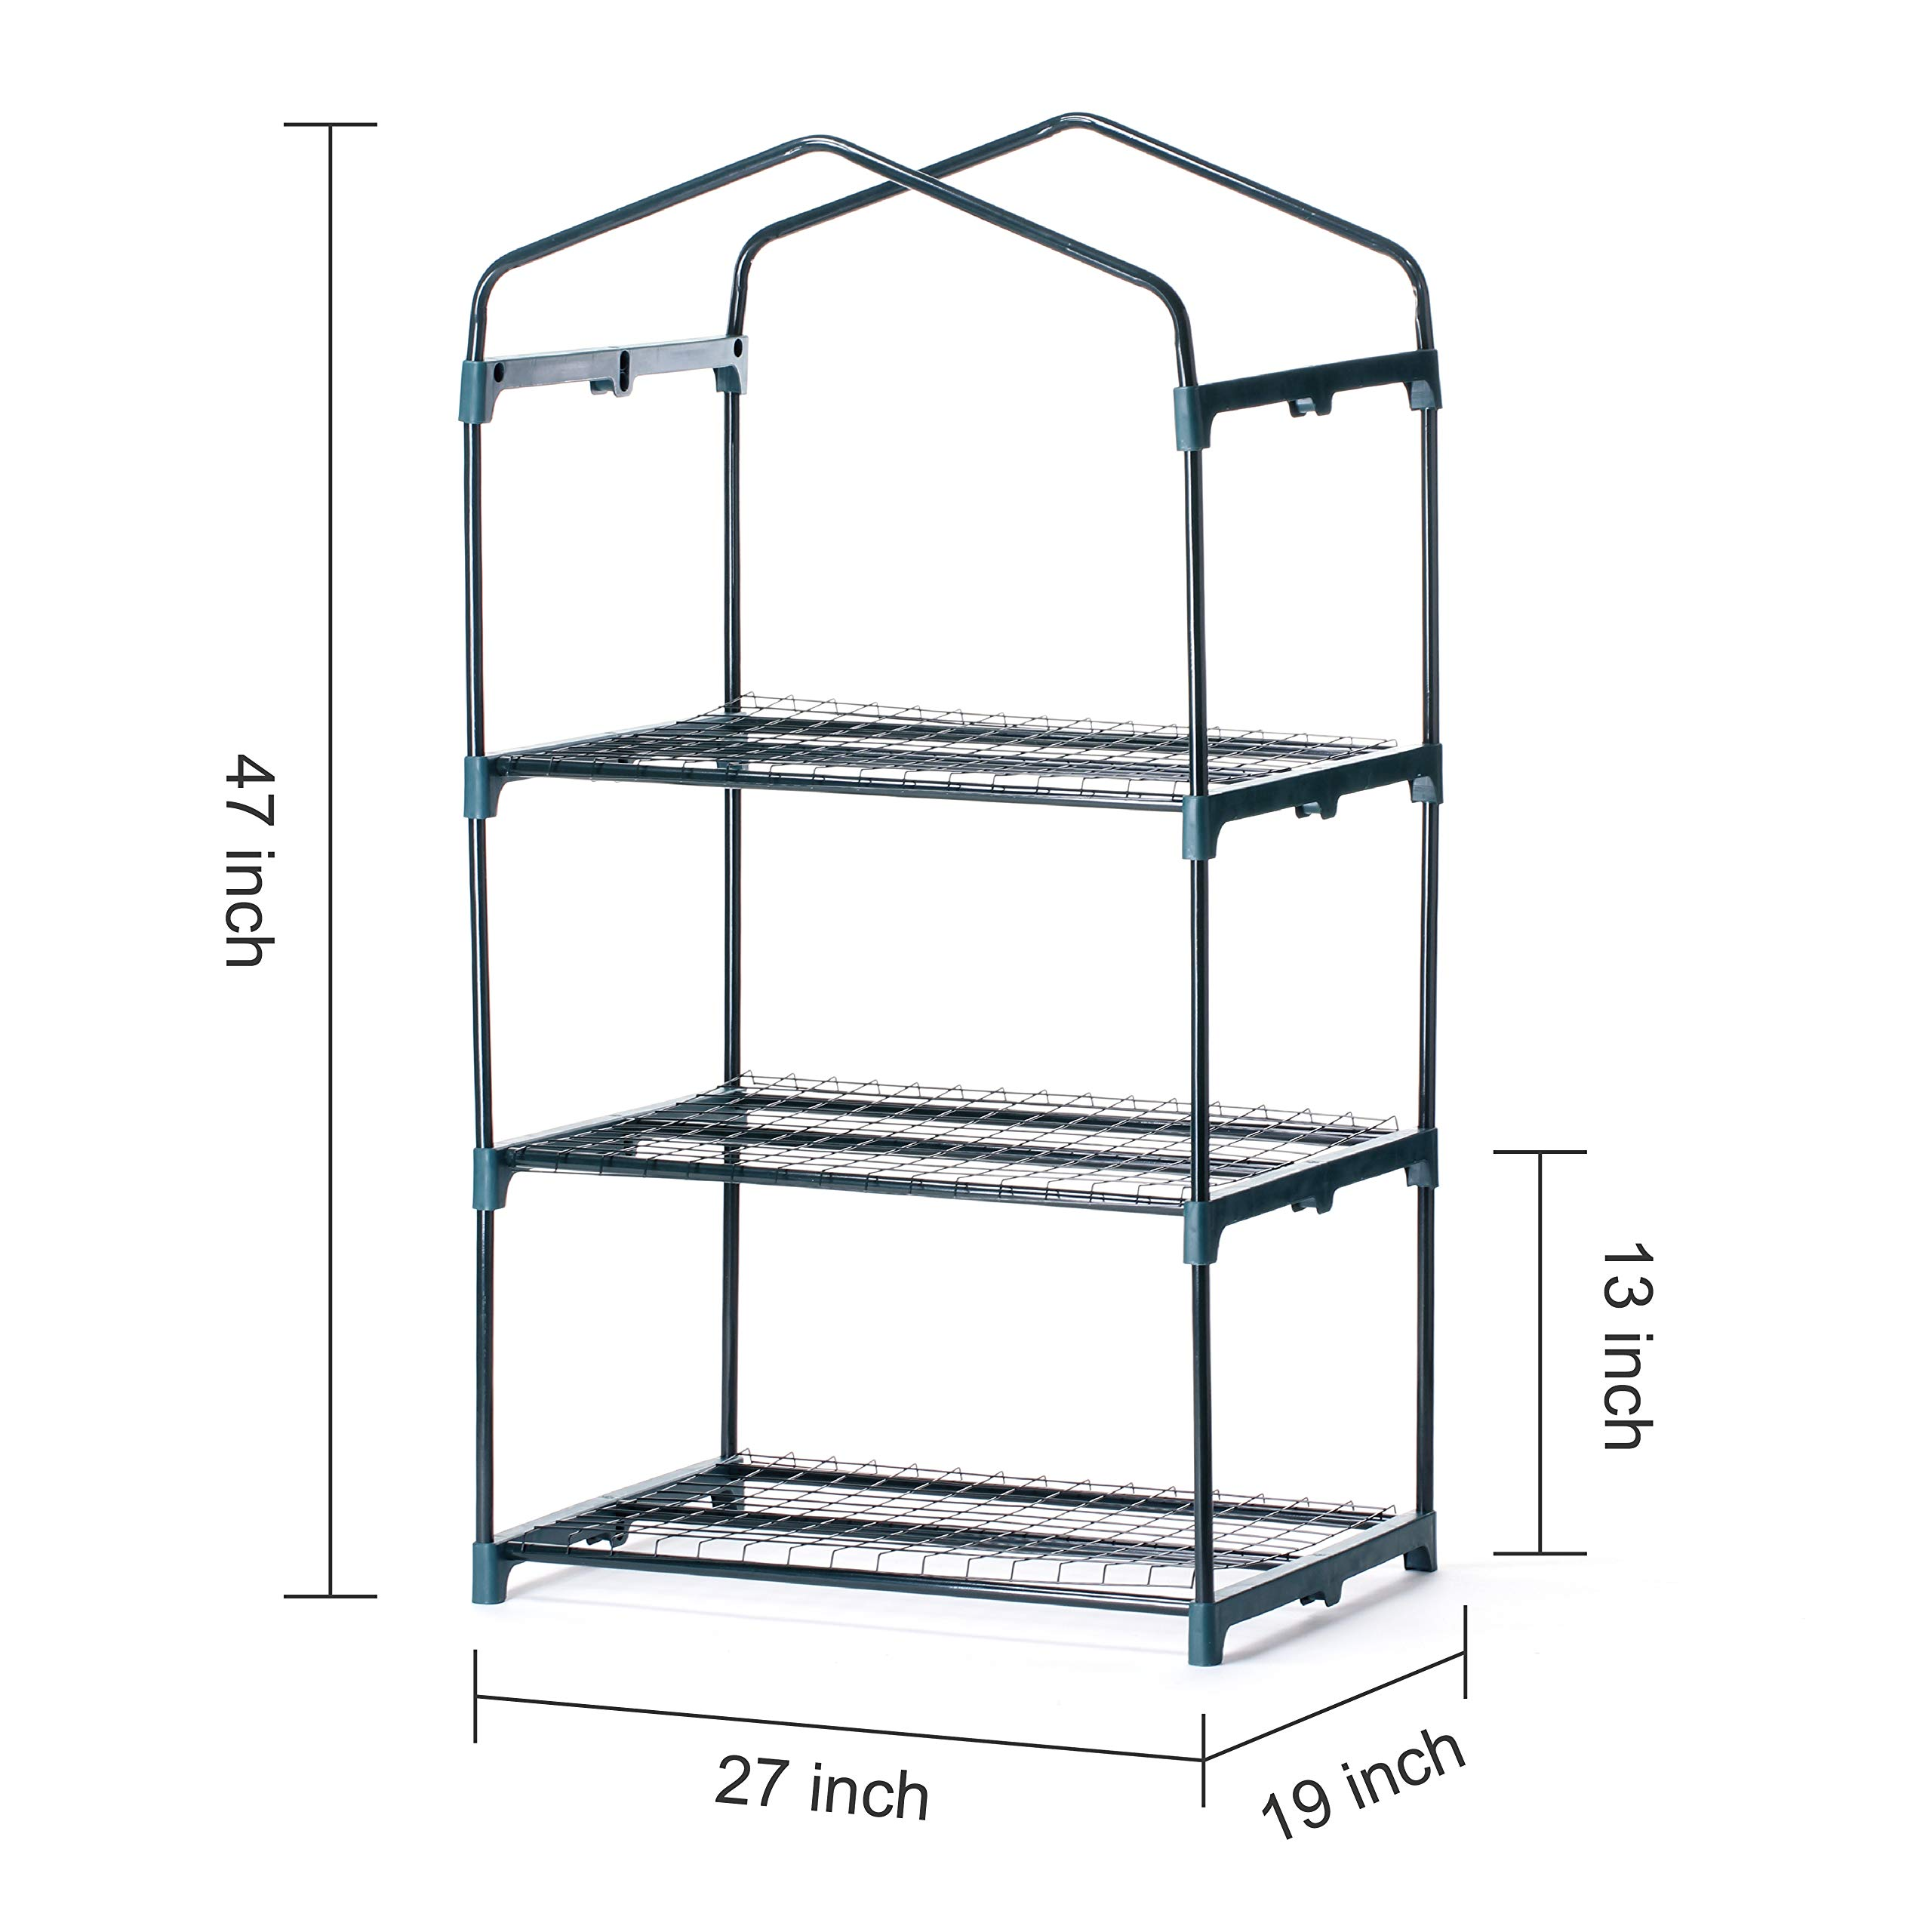 Worth MINI GREENHOUSE (ALL NEW) - NEW METAL GREEN VERSION 3 tier COLLAPSABLE shelves - Best Greenhouse ROLL UP ZIPPER DOOR Seedlings & Seed Propagation Plant Growing - 3 Year GUARANTEE